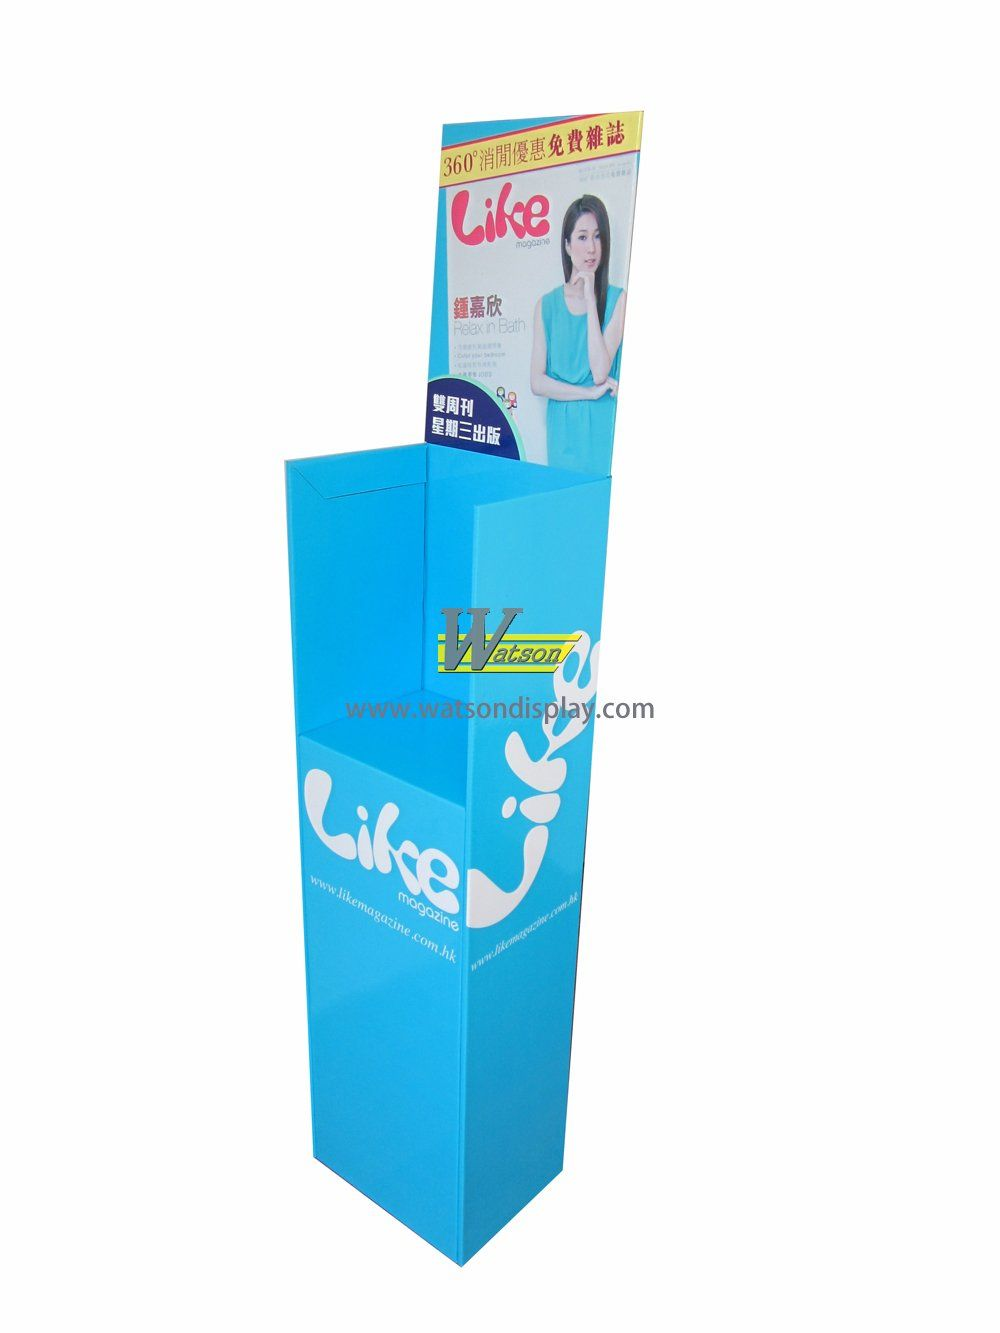 Exhibition promotion cardboard display stands for magazine